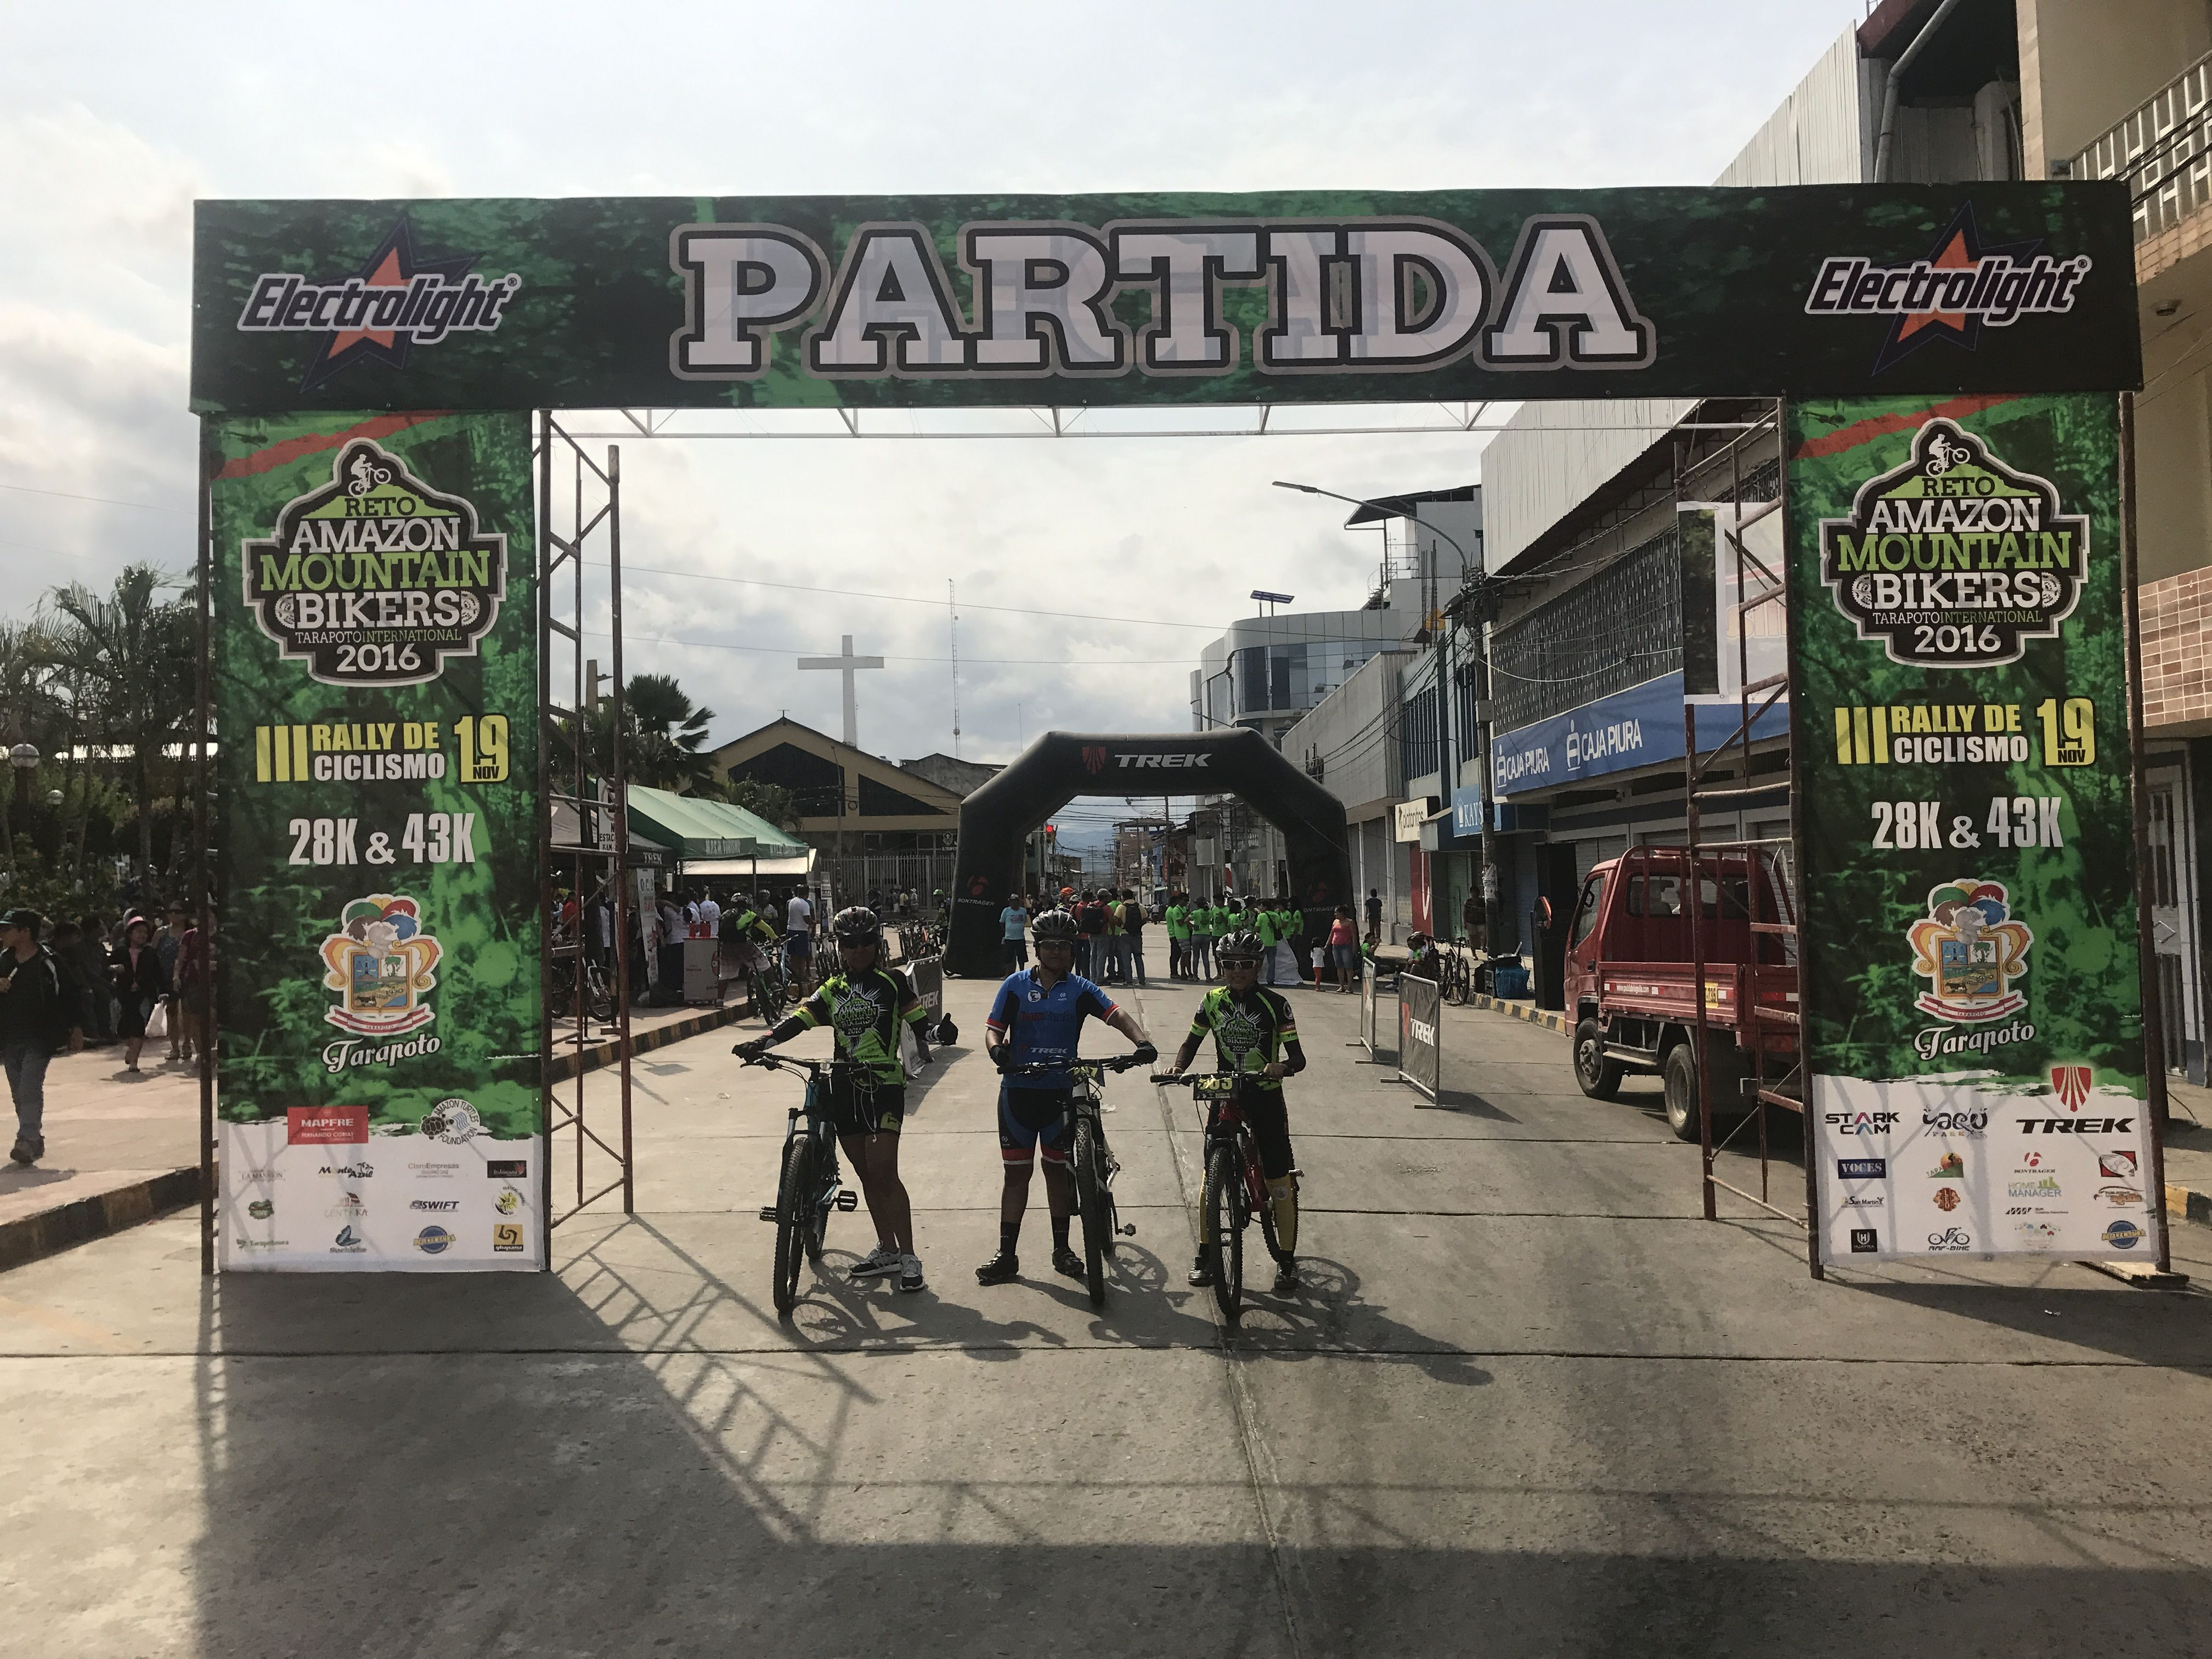 eventos de mountain bike